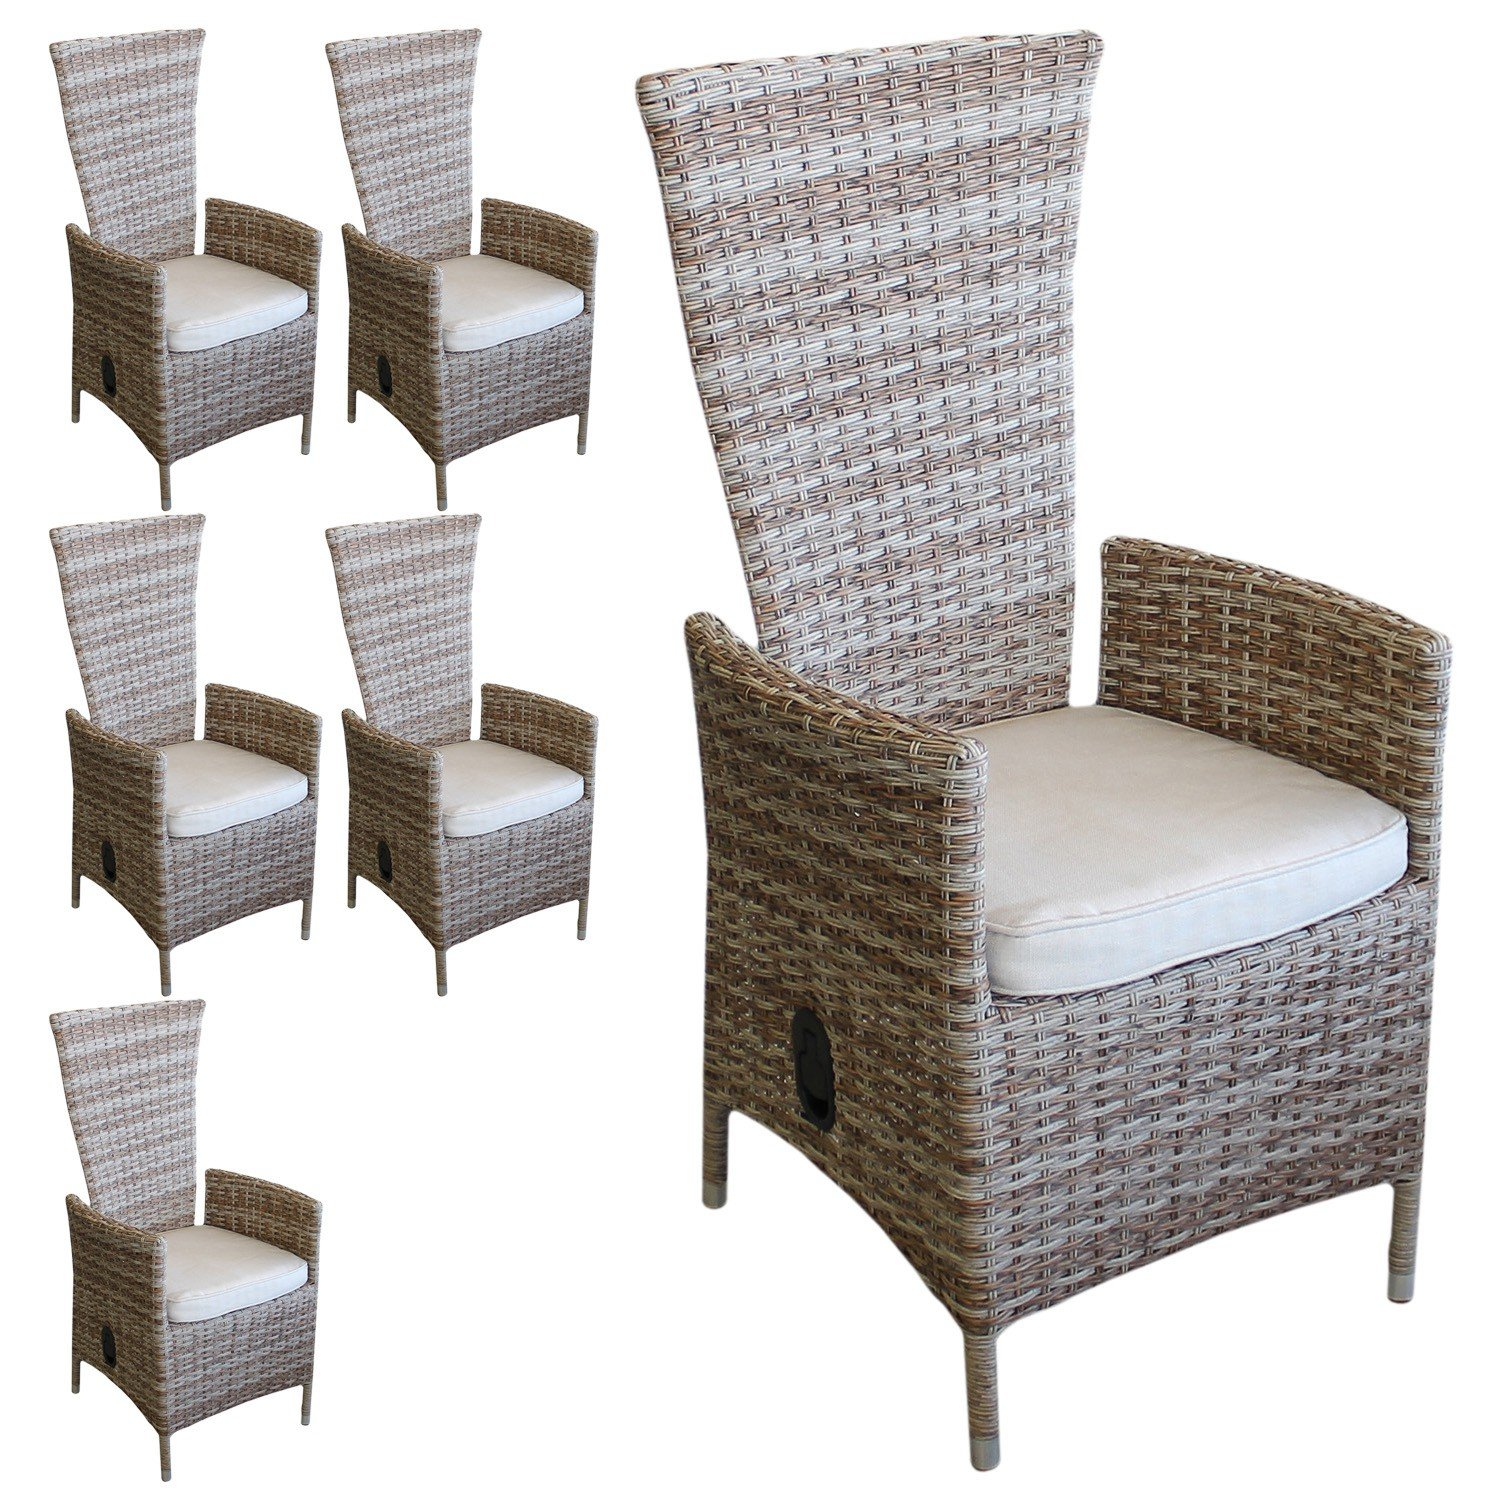 6 st ck poly rattan gartensessel gartenstuhl relaxsessel rattanstuhl rattansessel r ckenlehne. Black Bedroom Furniture Sets. Home Design Ideas